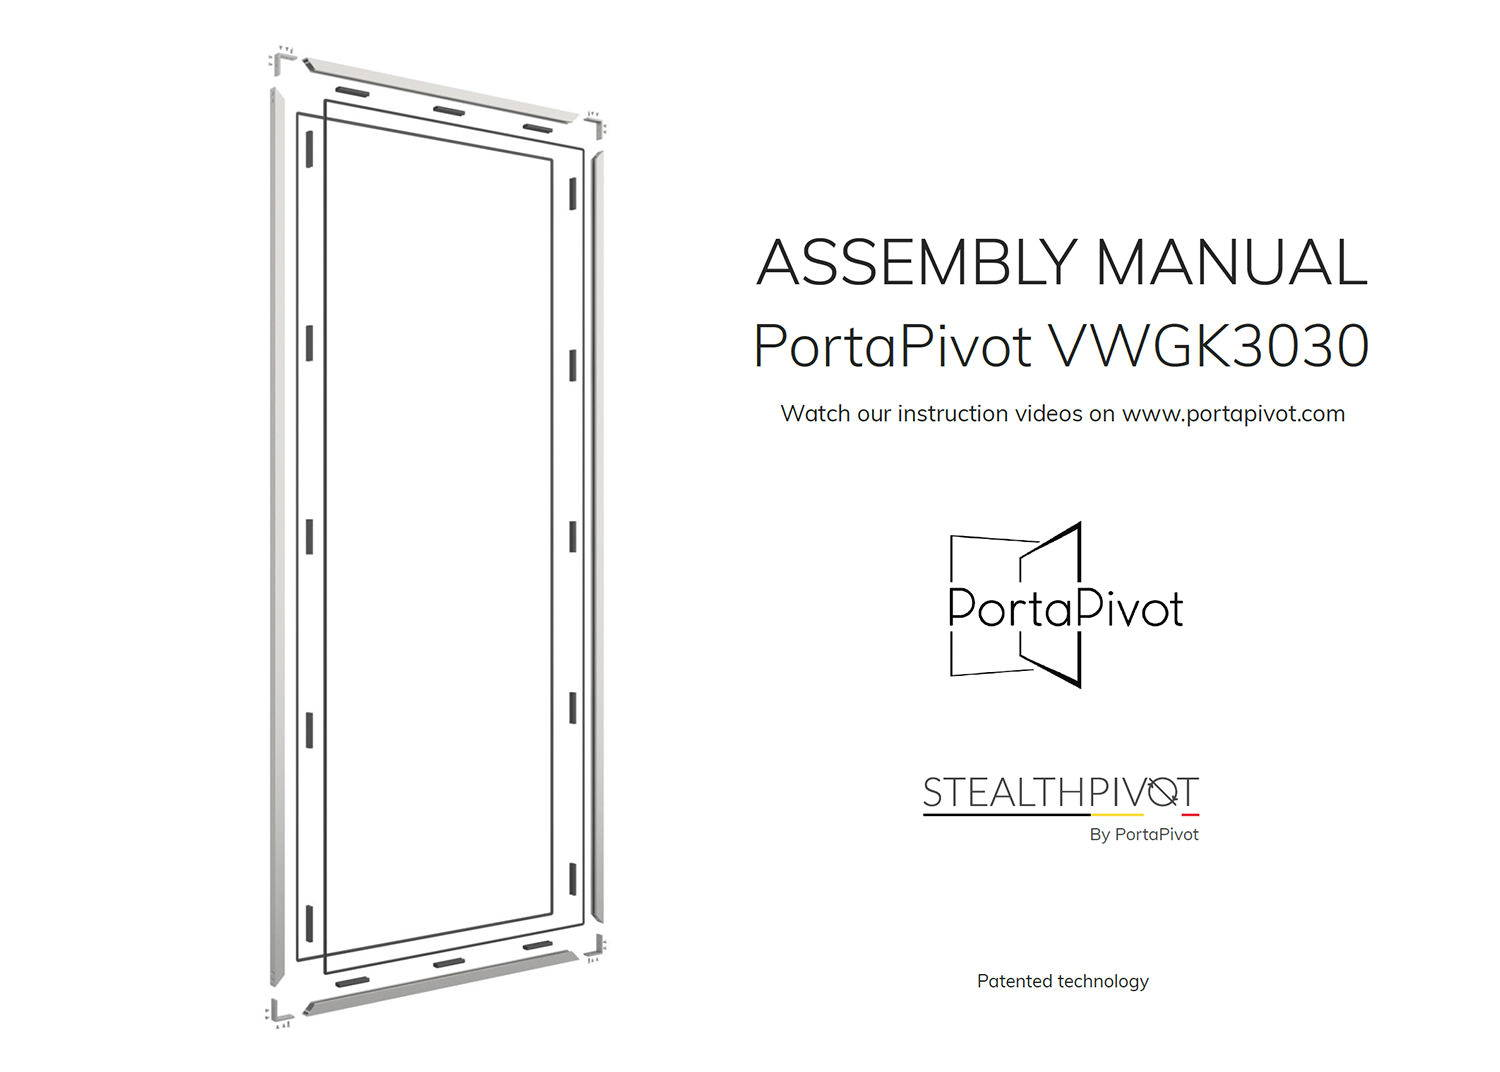 Portapivot 3030 assembly manual